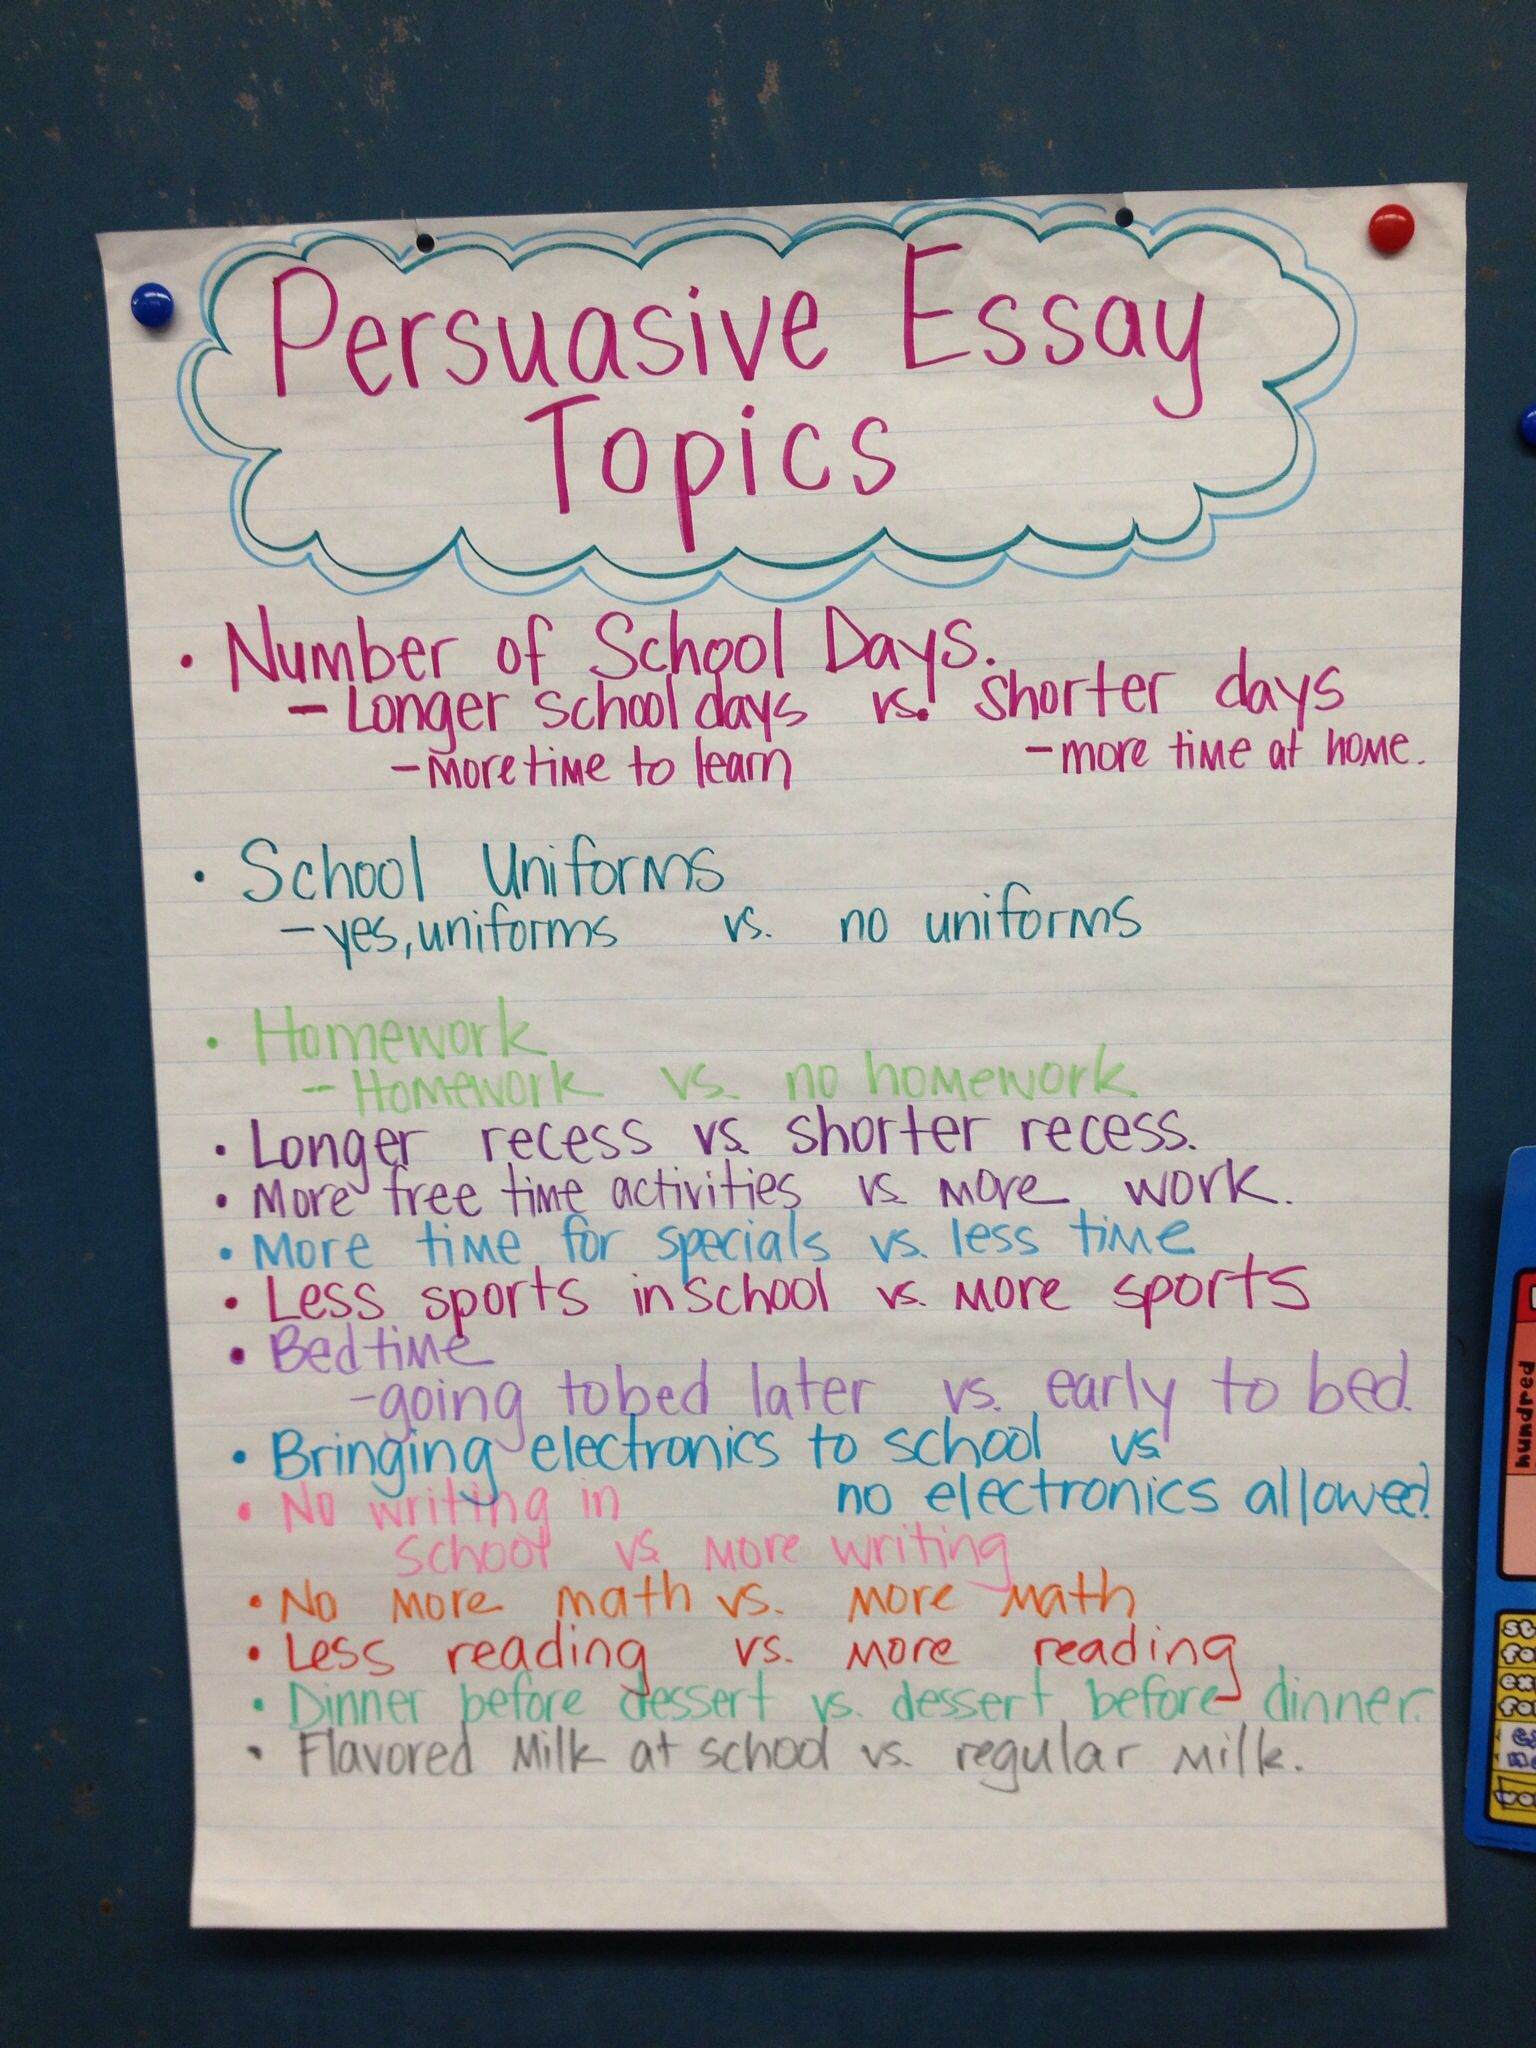 010 Topics For Persuasive Essay Example Breathtaking A Best Top 10 Controversial Full